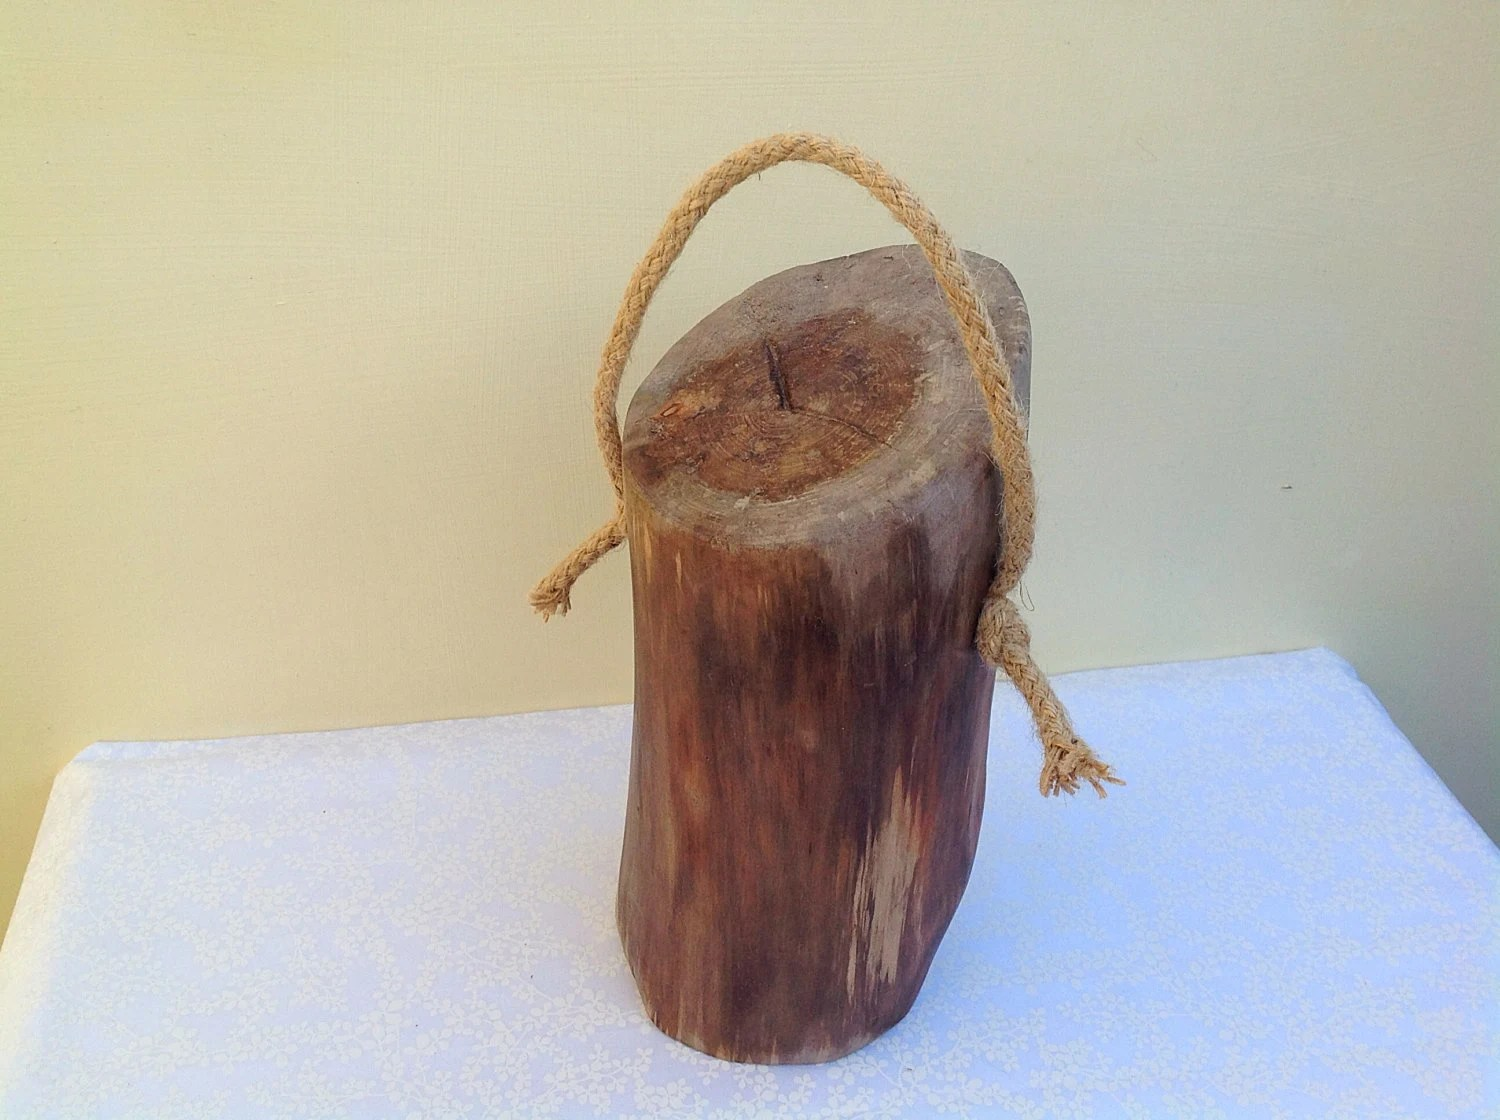 Rustic Door Stopper Driftwood Doorstop Rustic Tree Branch Wood Doorstop Natural